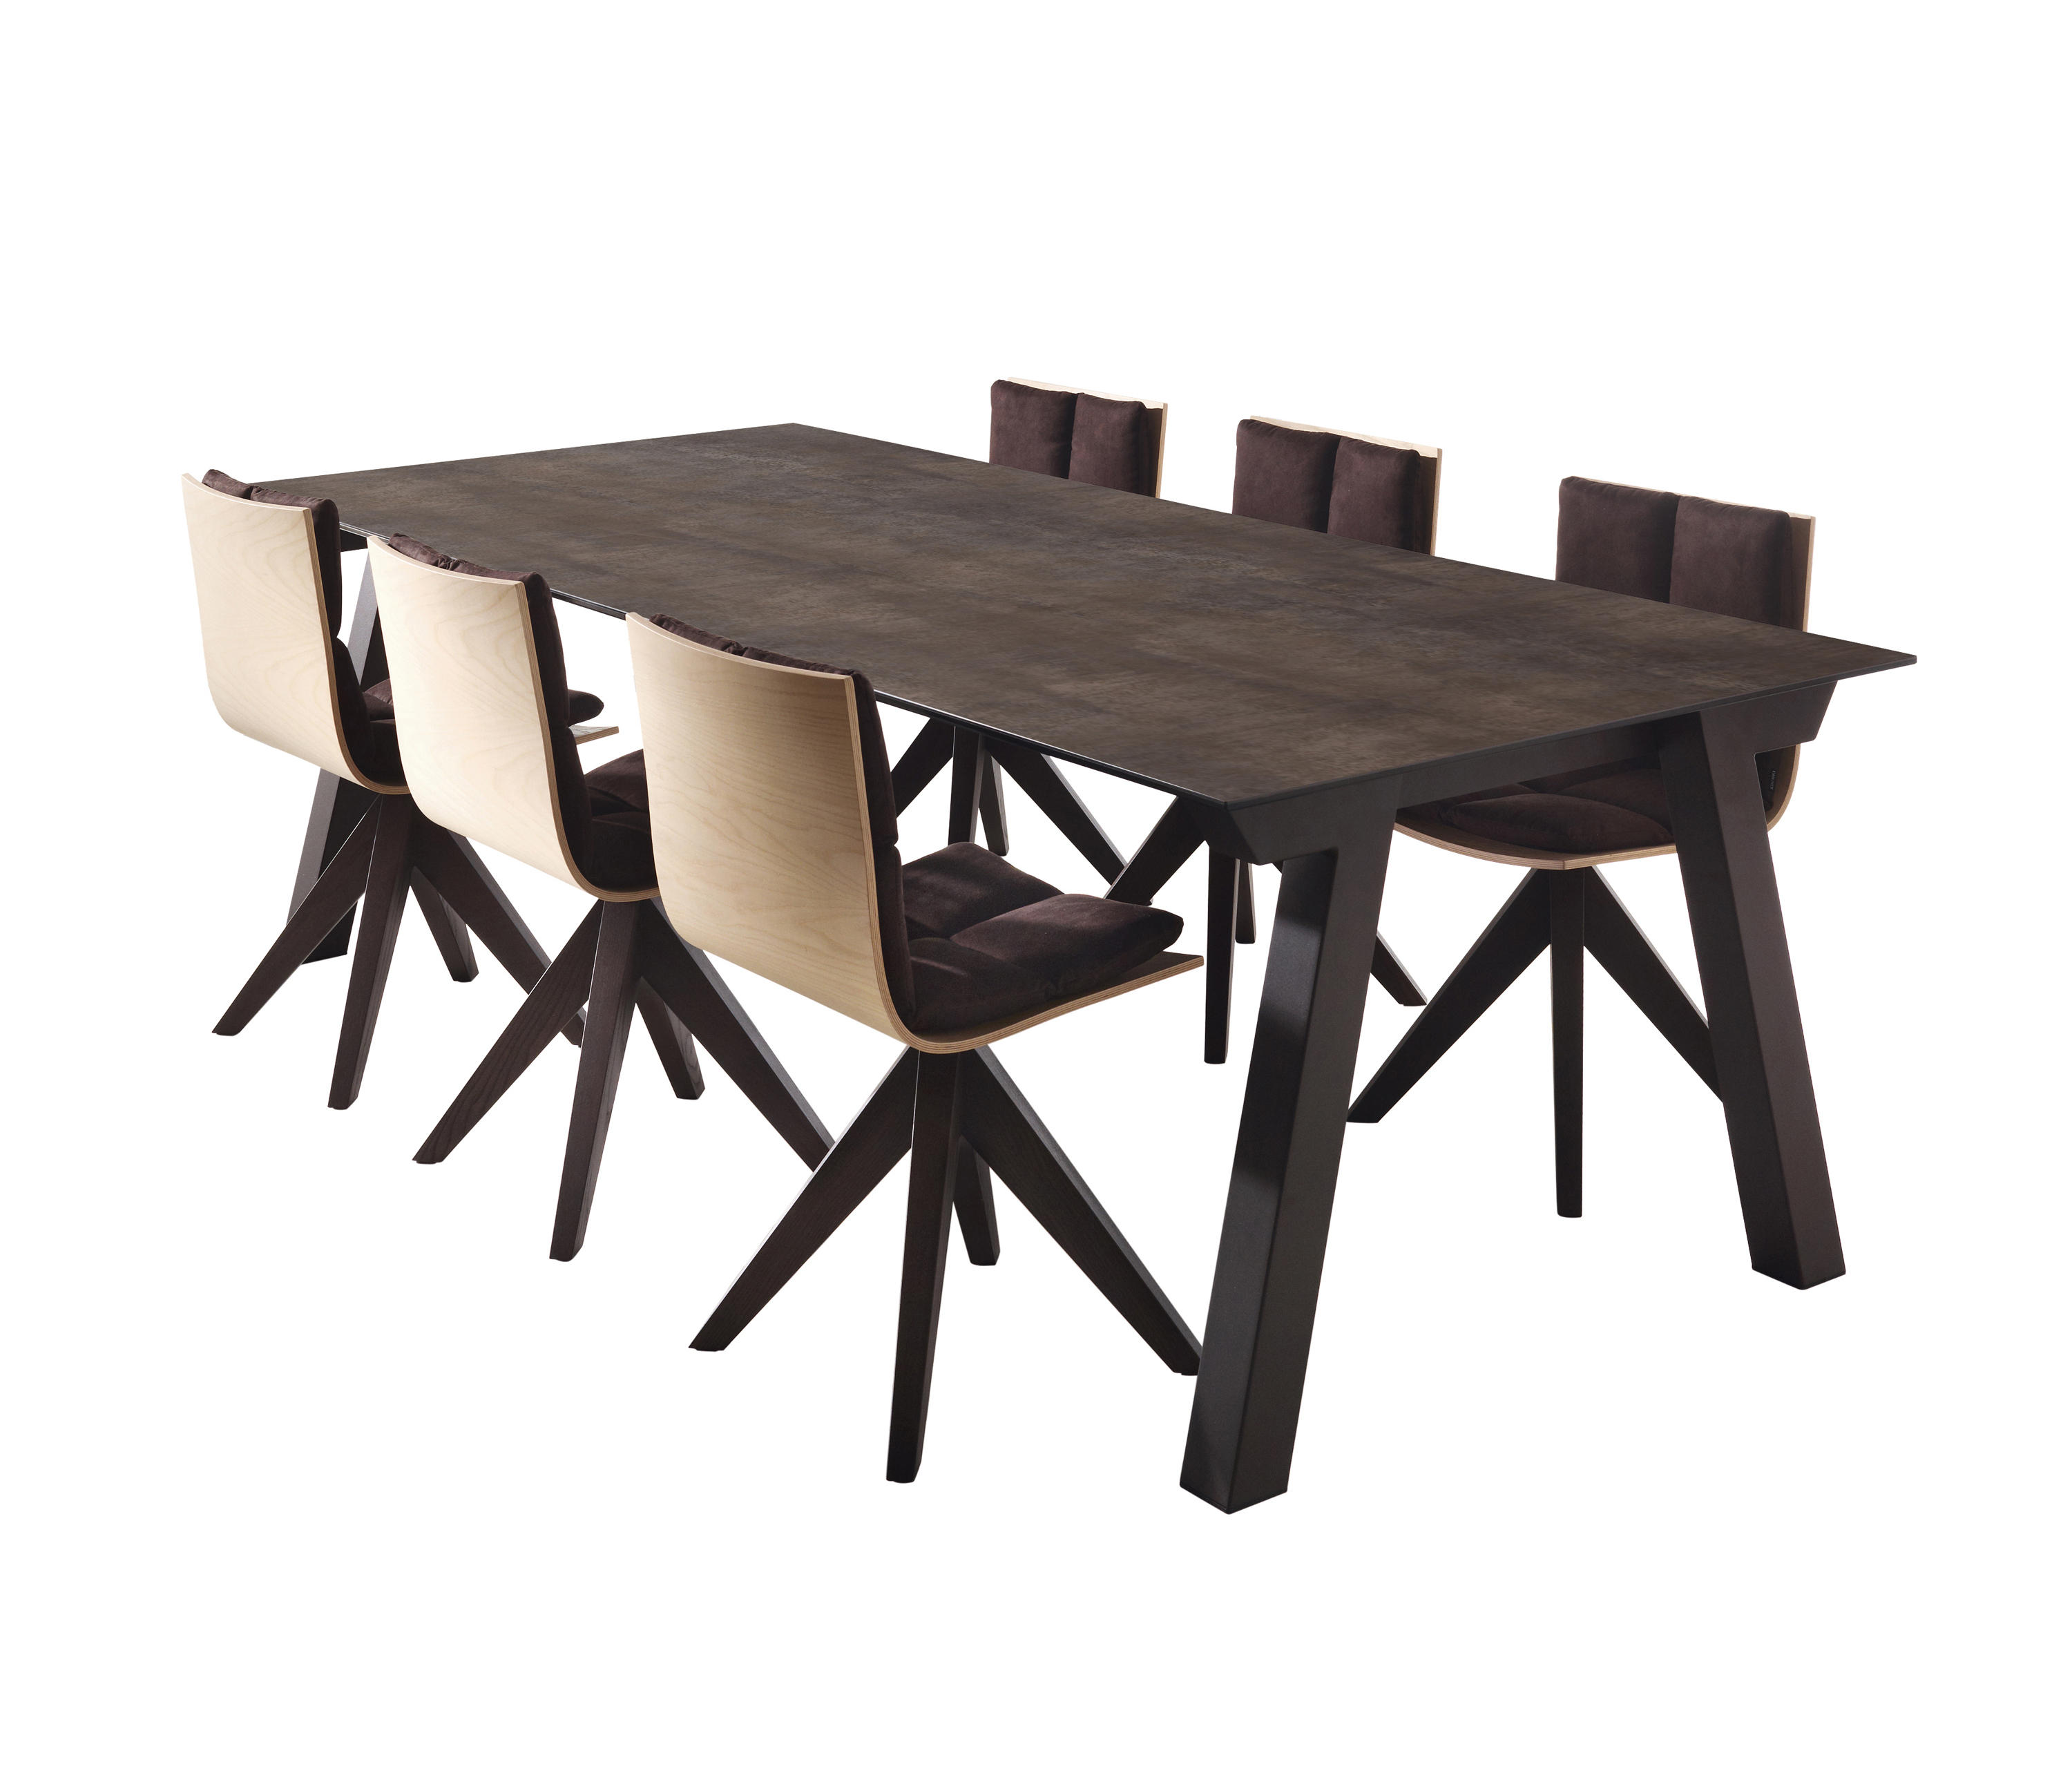 Ordinaire Duero Extending Table By Dressy | Dining Tables ...